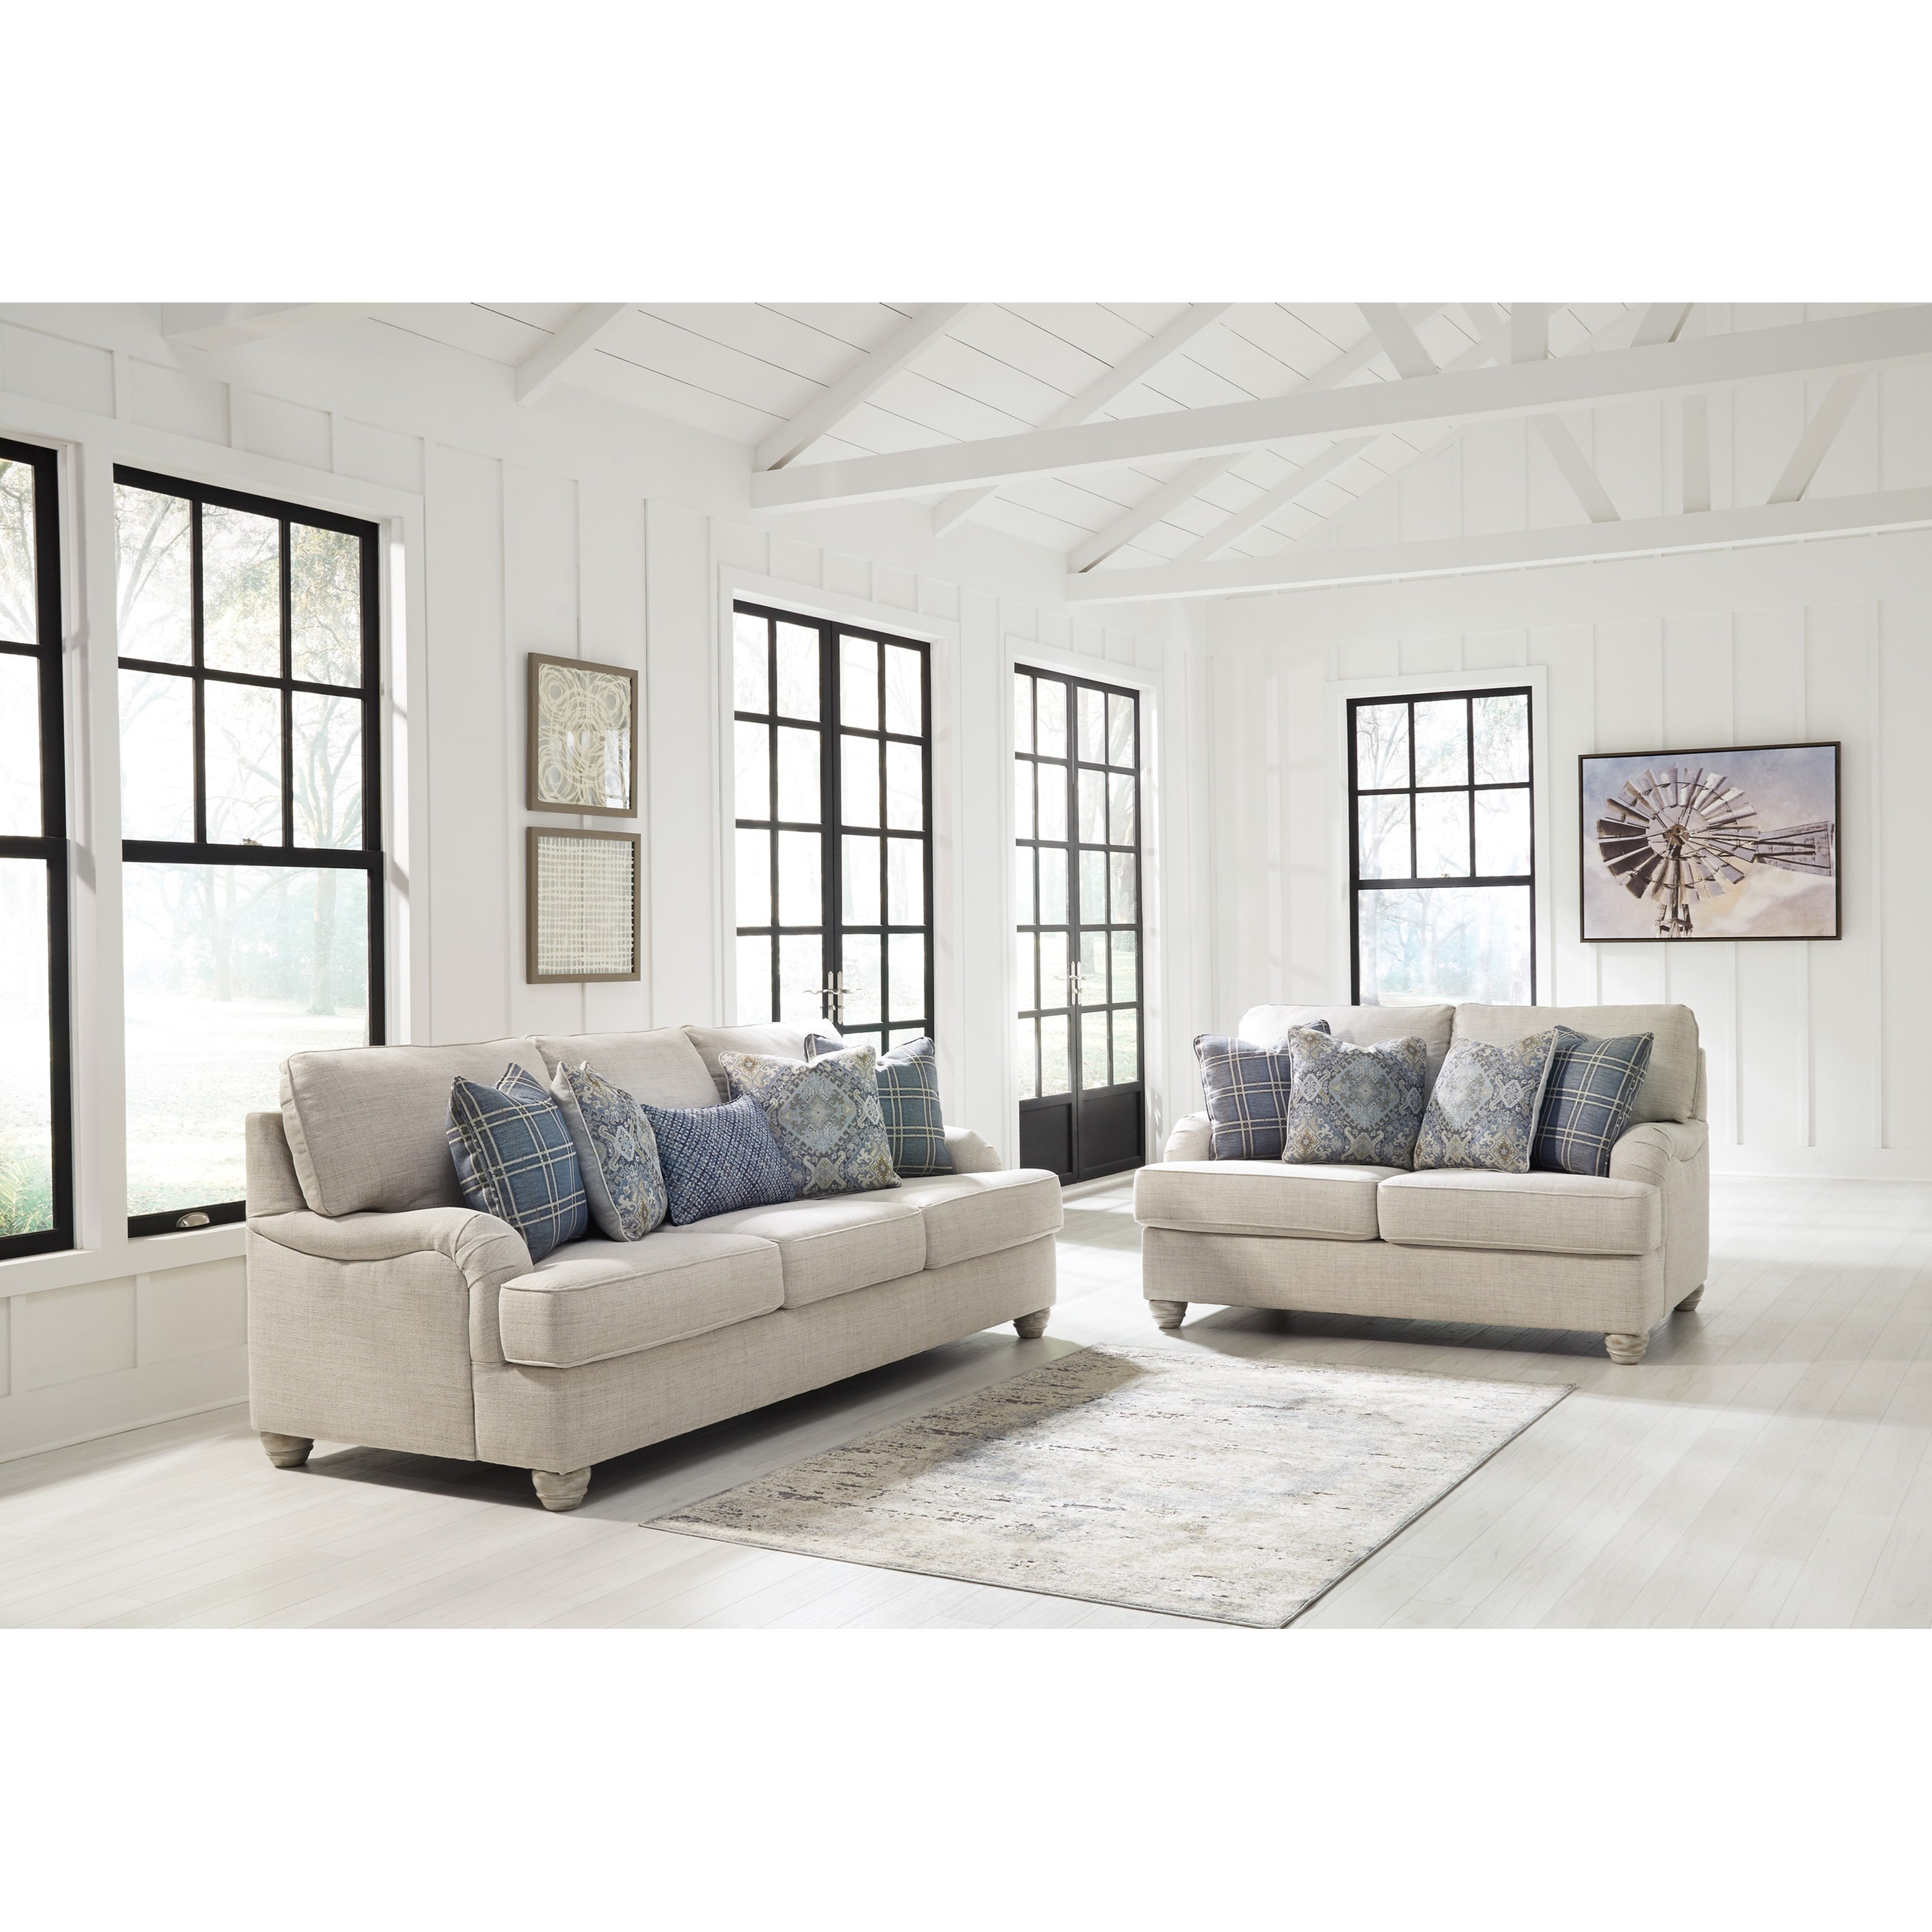 Traemore Stationary Living Room Group by Ashley at Godby Home Furnishings